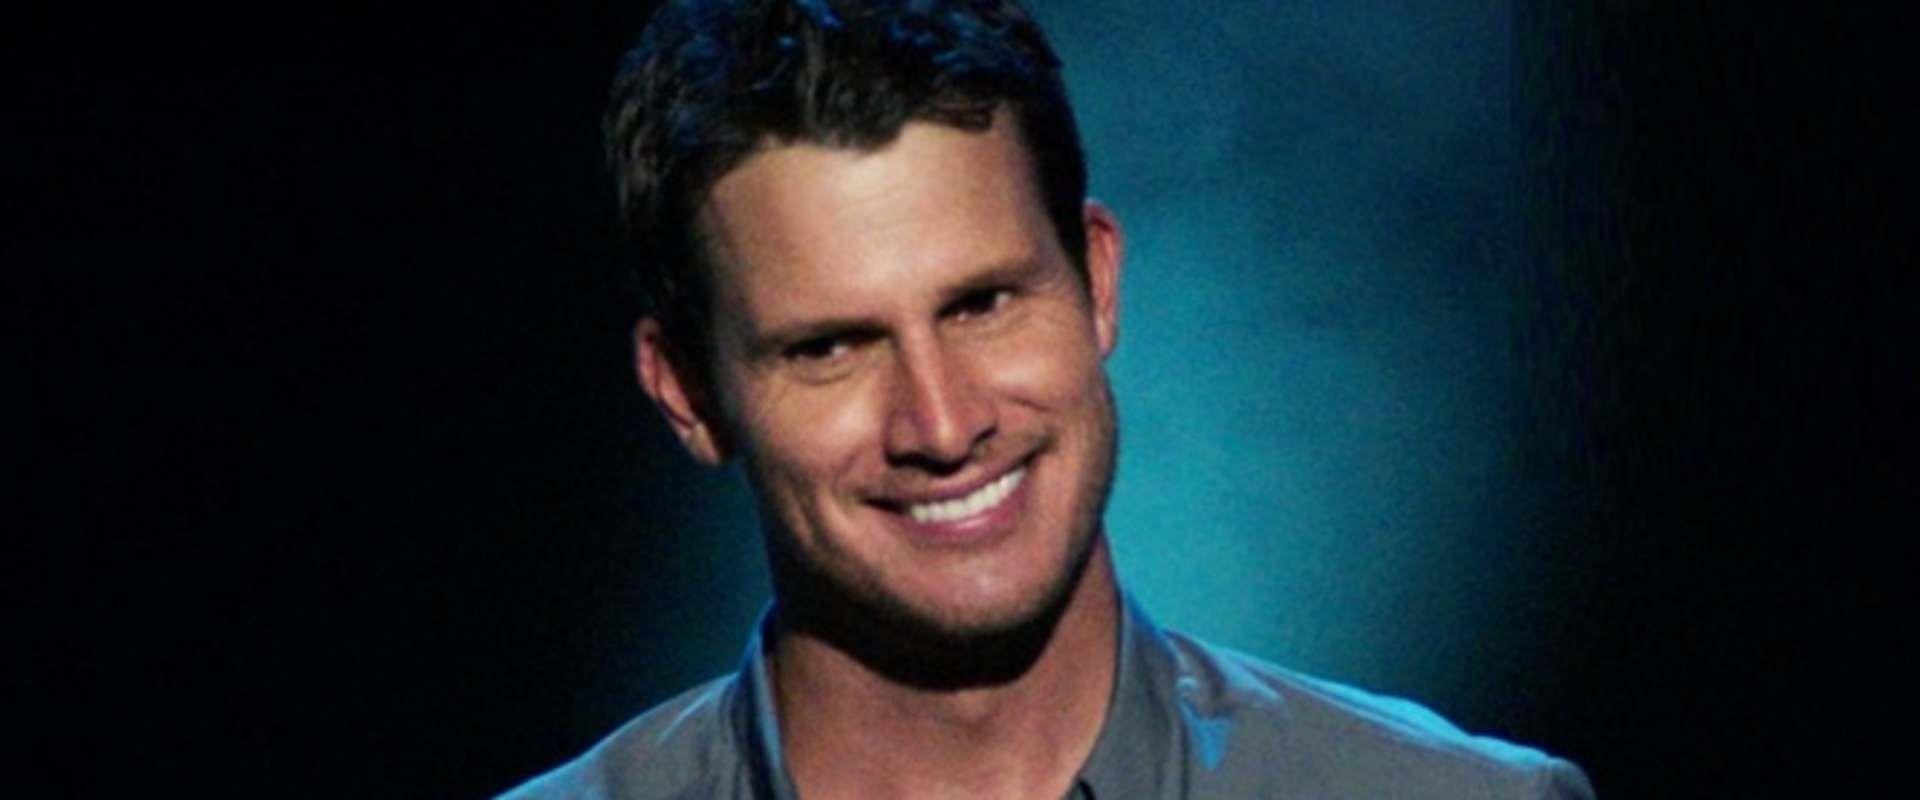 Daniel Tosh: People Pleaser background 1